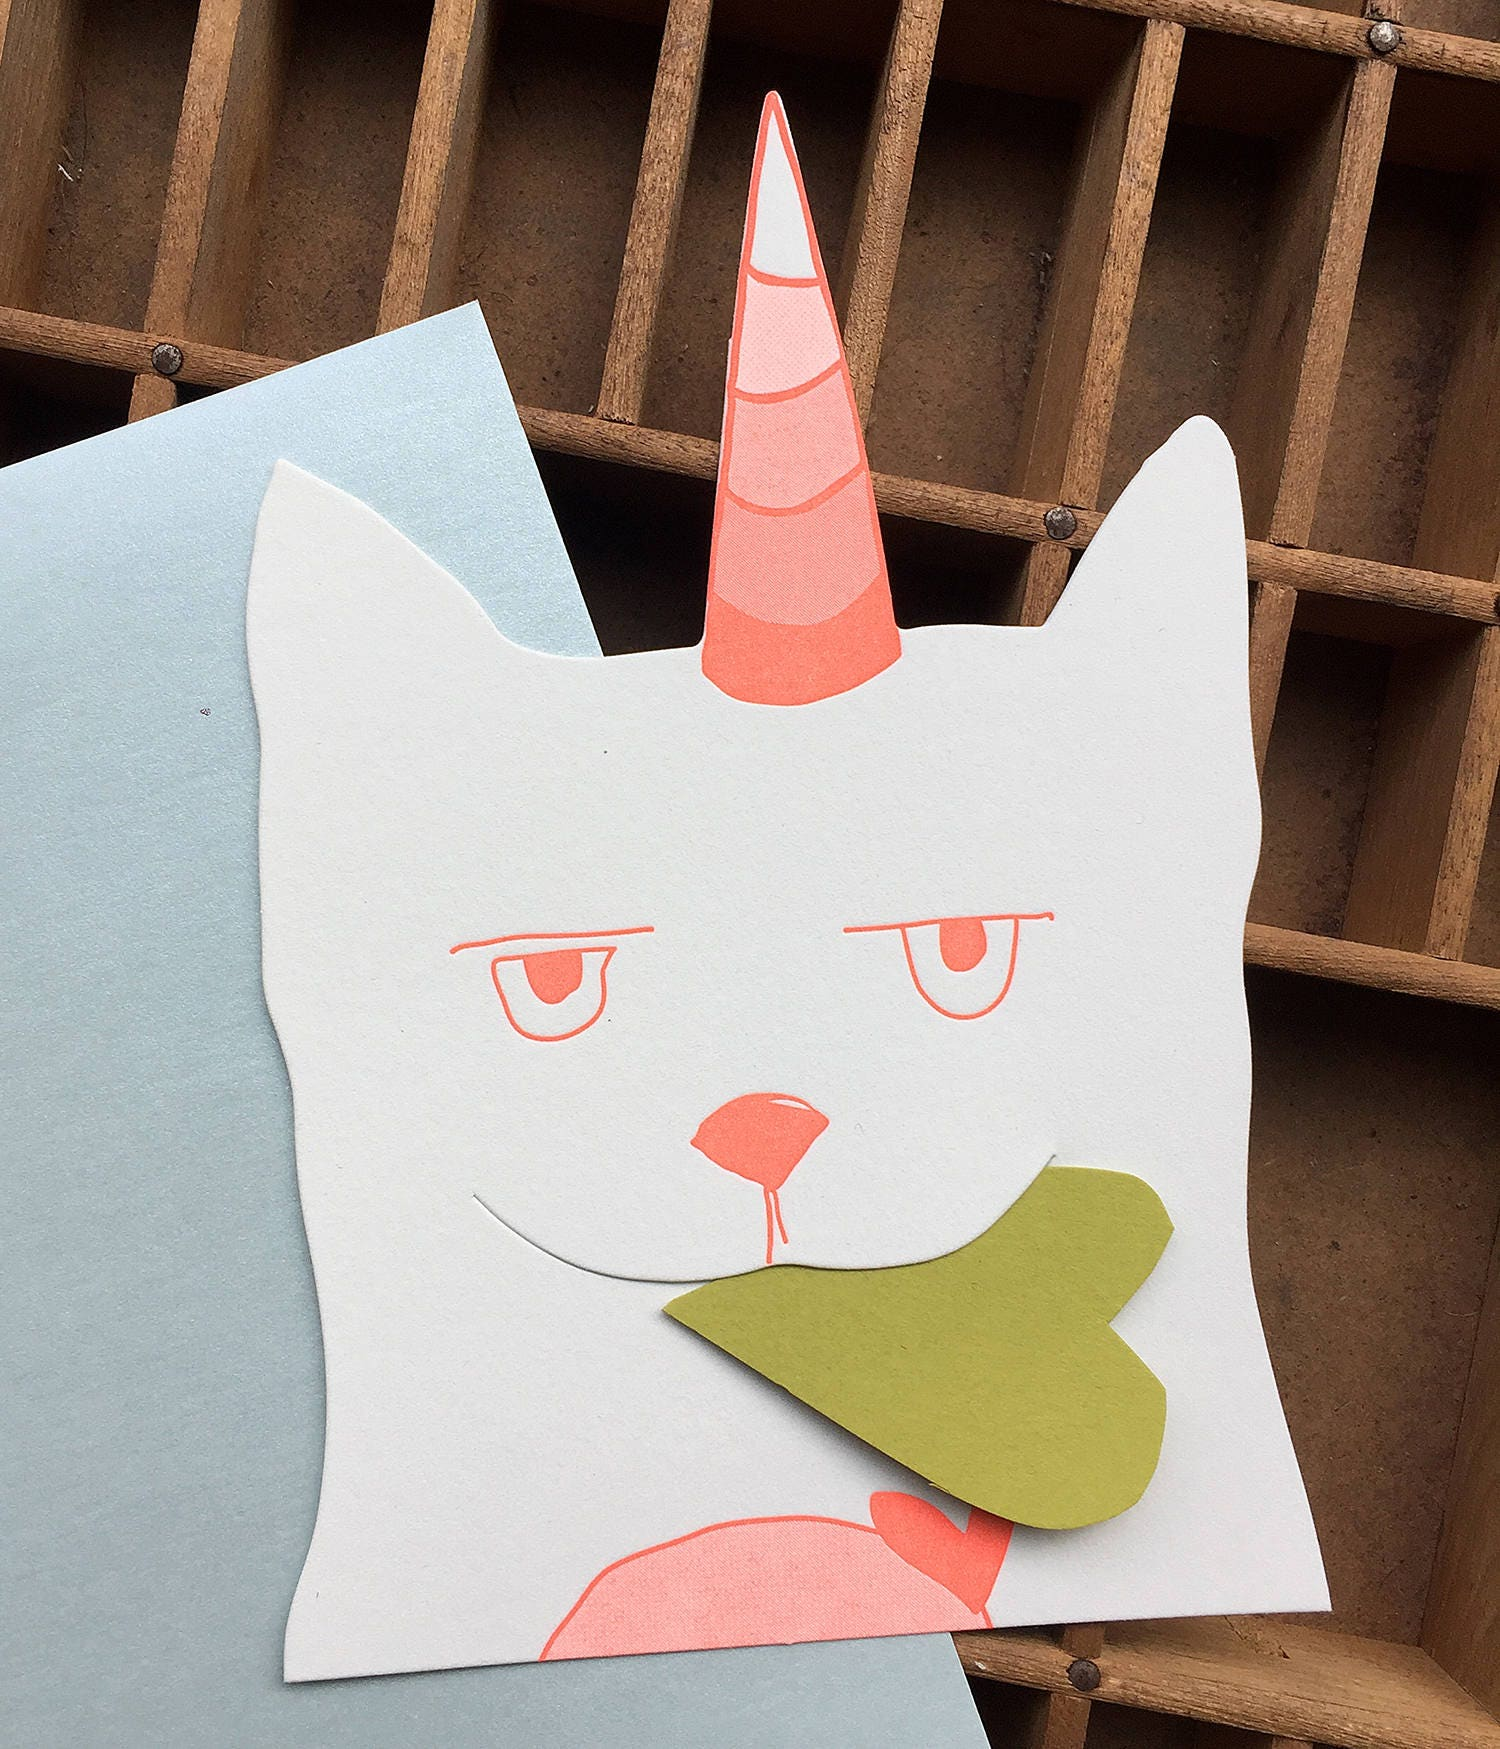 Letterpress love caticorn letterpress diecut gift card by blackbird letterpress buy colourmoves